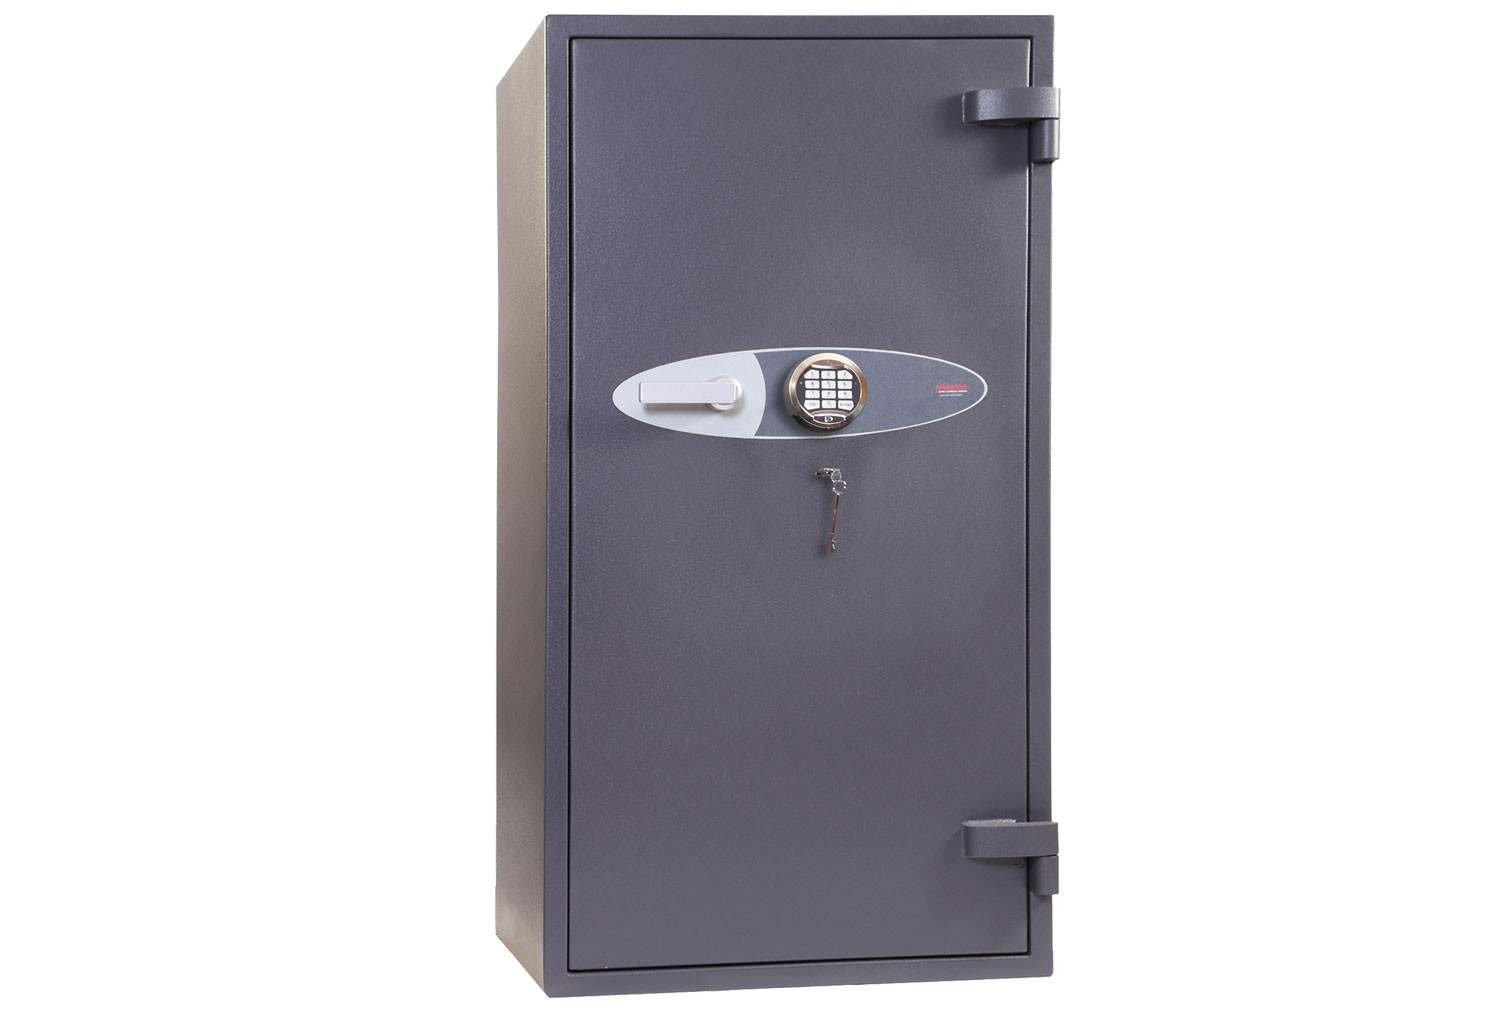 Phoenix Cosmos HS9074E High Security Safe With Electronic Lock (295ltrs)